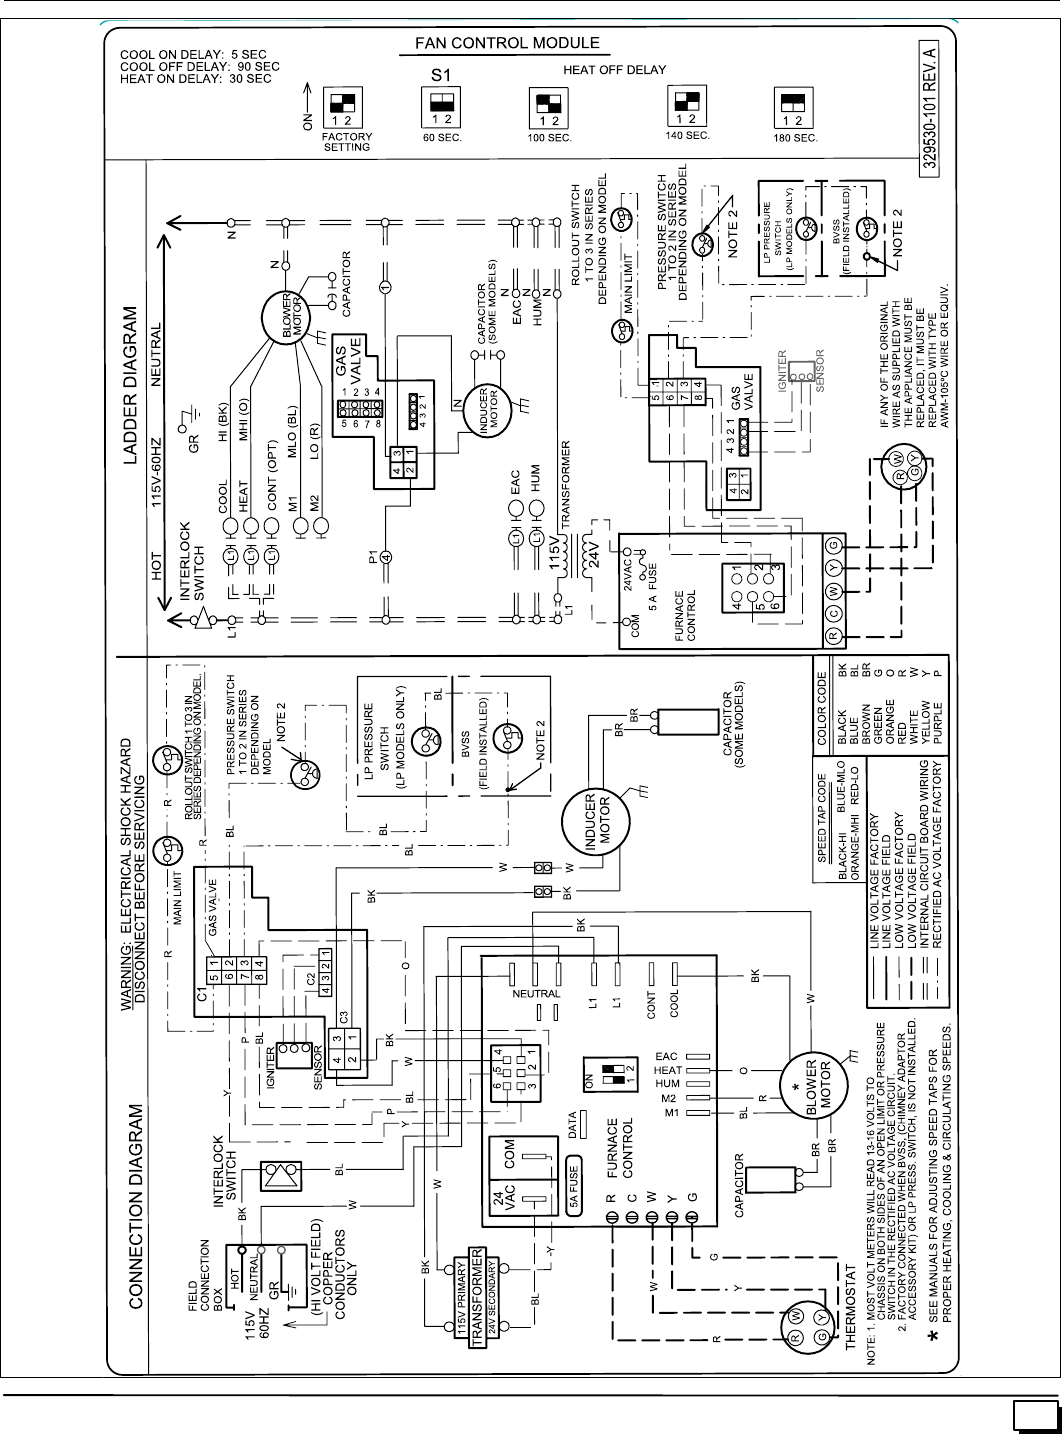 N8mpn050b12b1 44101261106 Wiring Diagram Trailer Spares For Sale Venter 43 441 01 2611 06